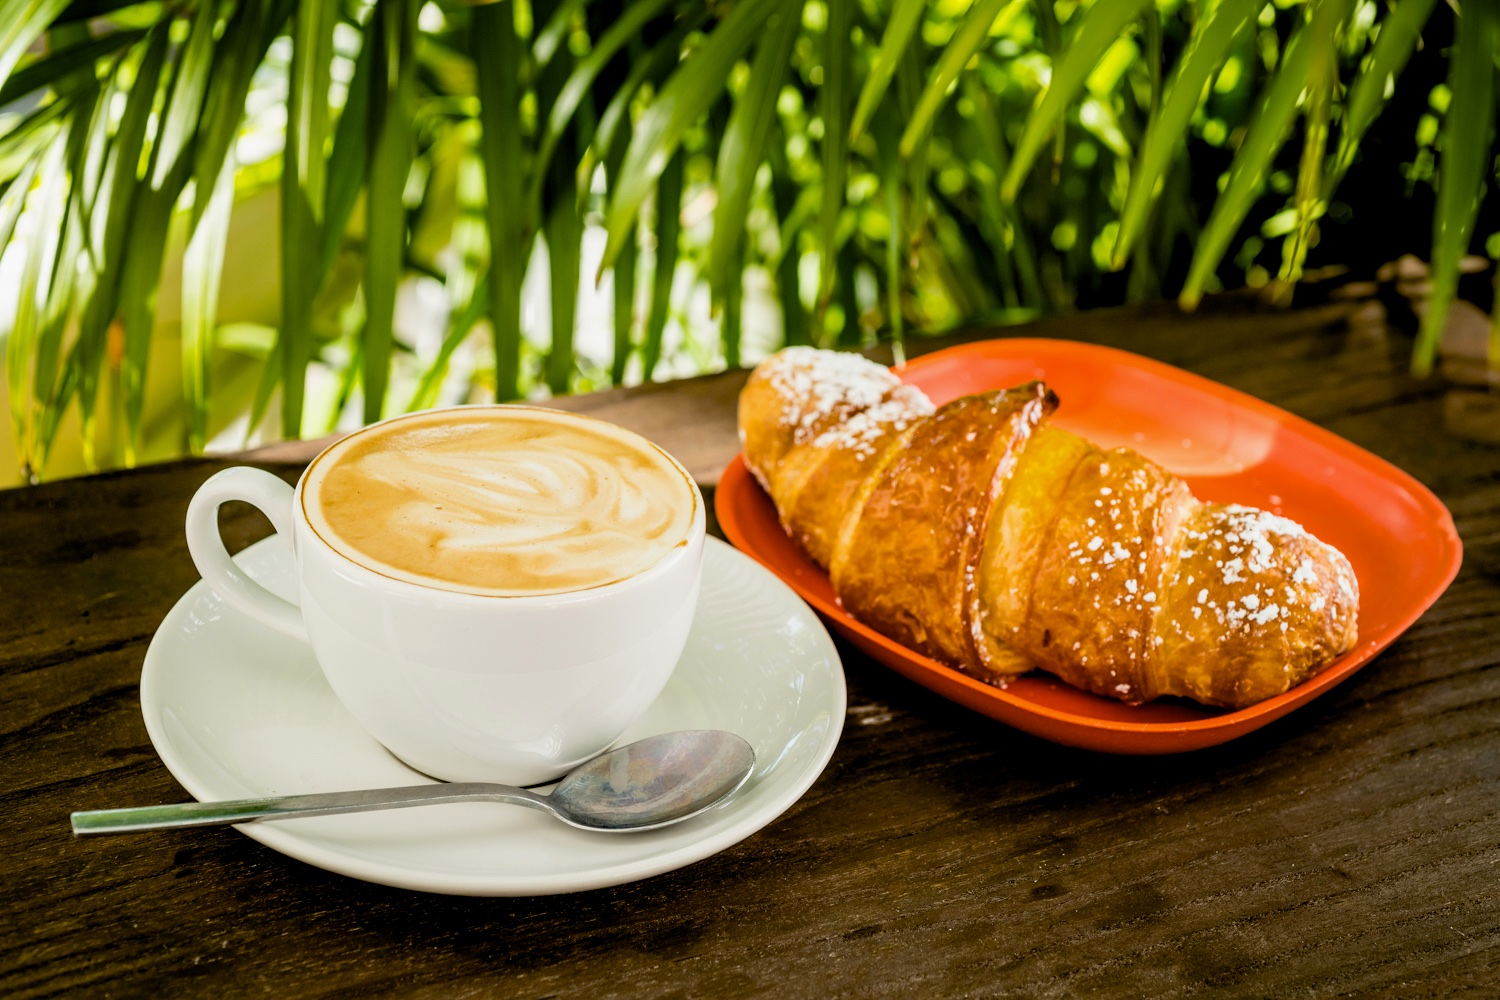 croissants and baked goods, cappuccinos, lattes, and espresso